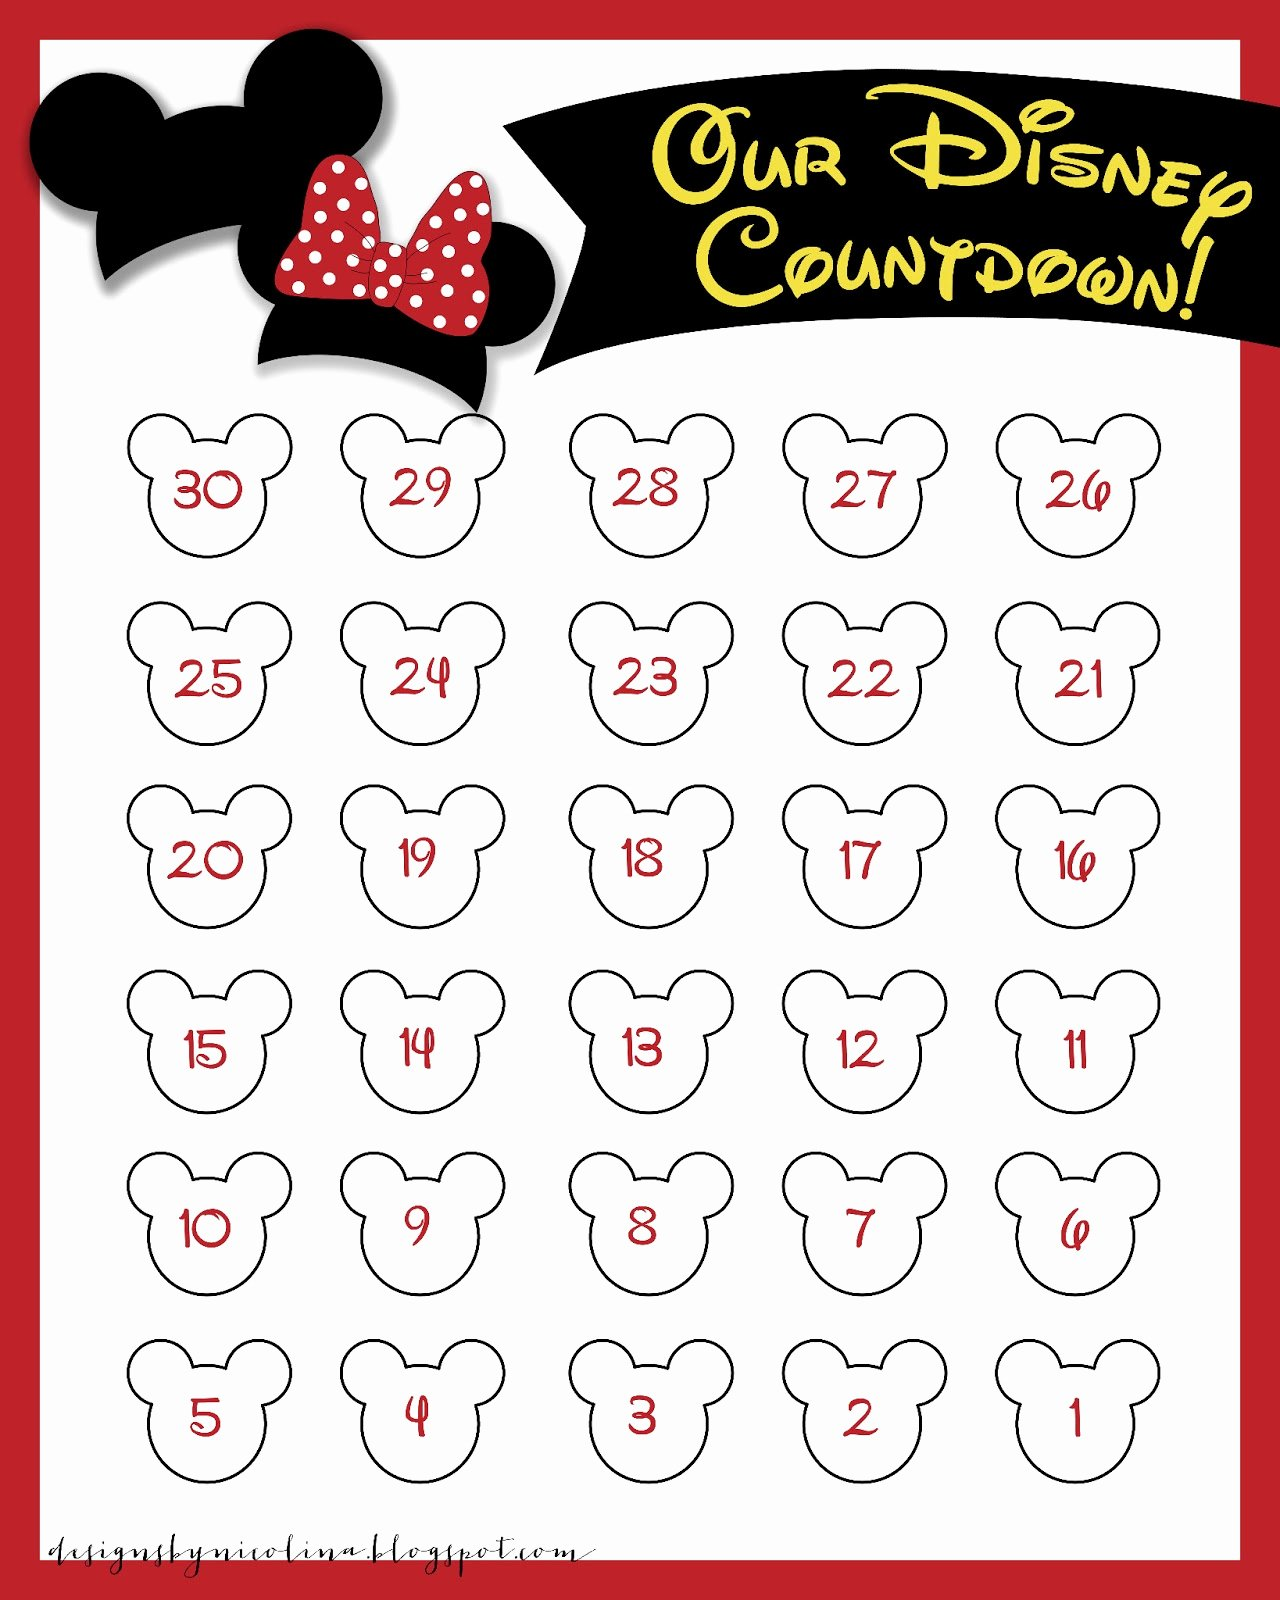 Printable Countdown Calendar Template Elegant Designs by Nicolina Disney Countdown Free Printable